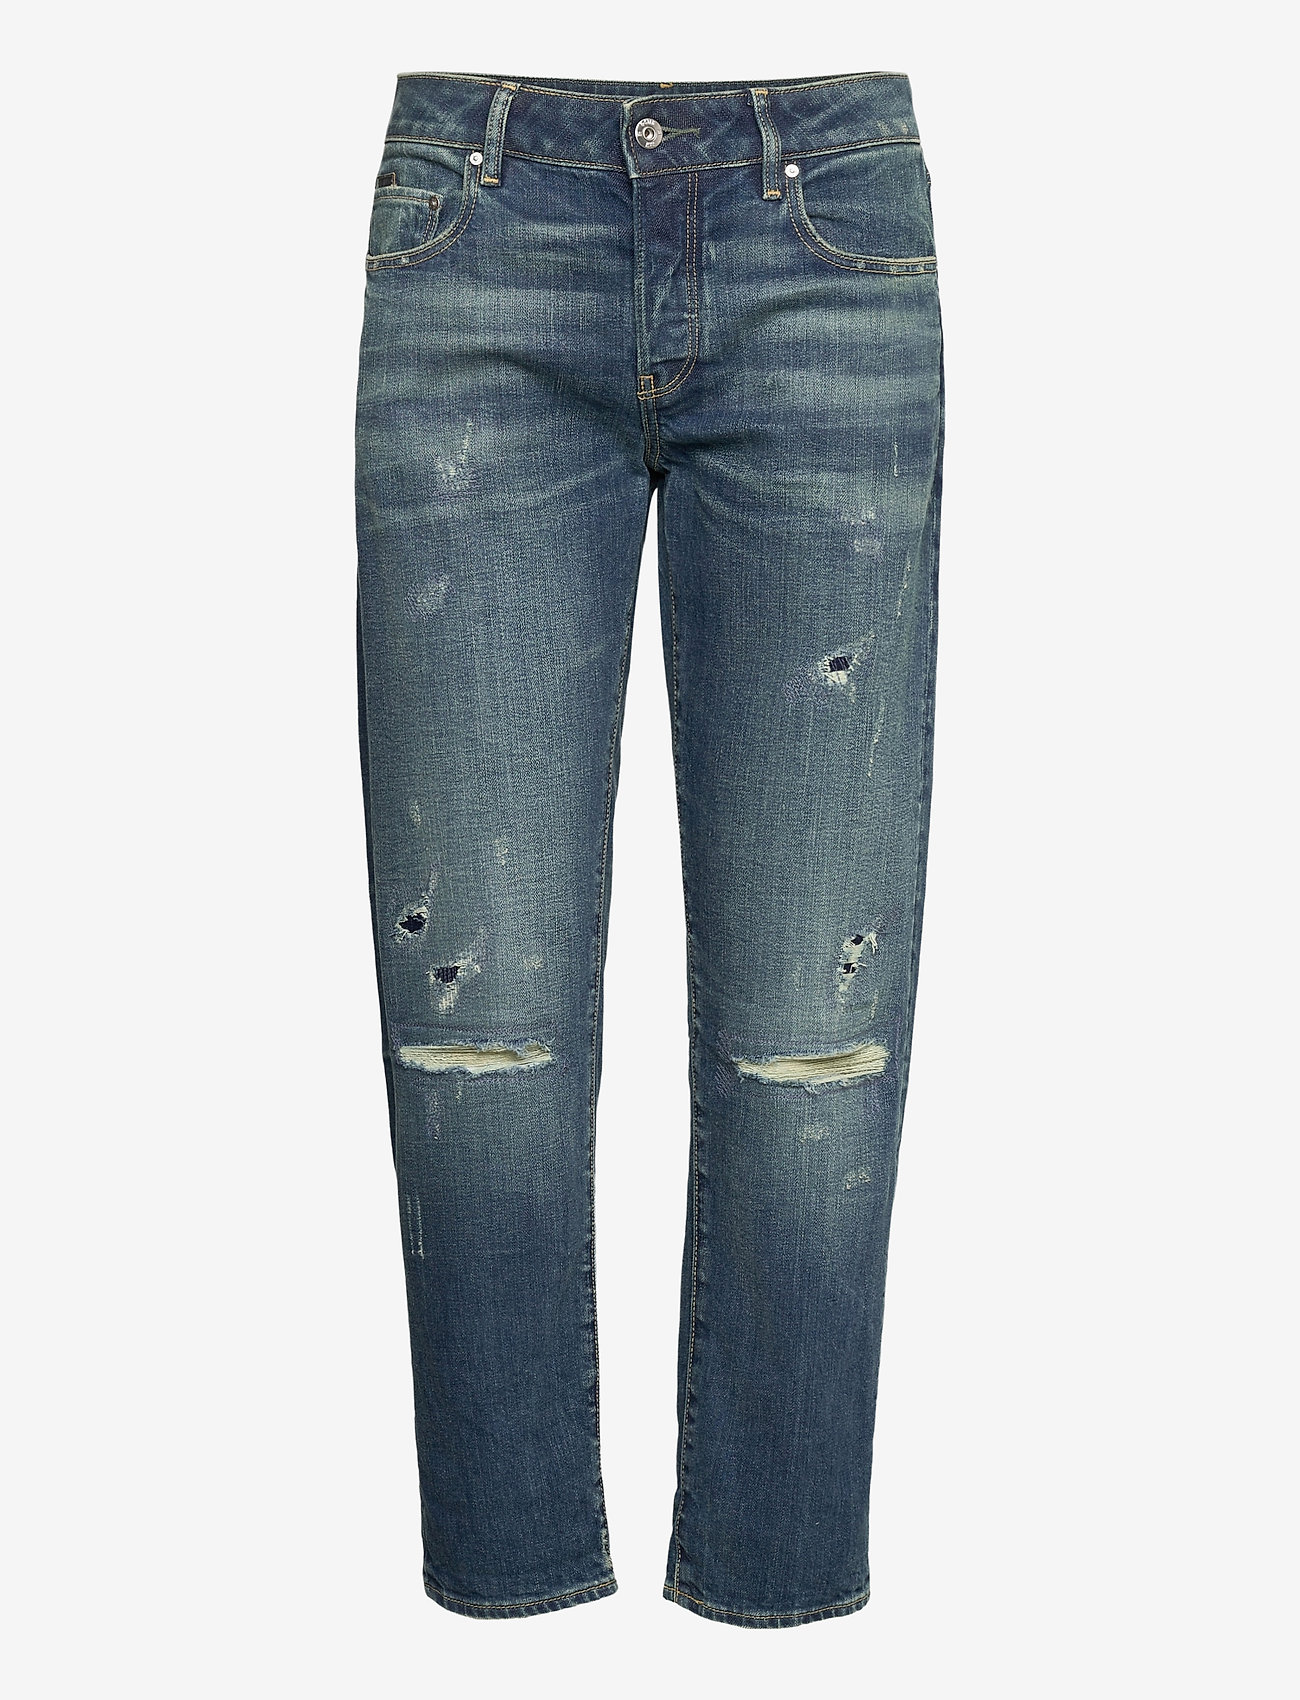 G-star RAW - Kate Boyfriend Wmn C - boyfriend jeans - faded ripped atlas - 1